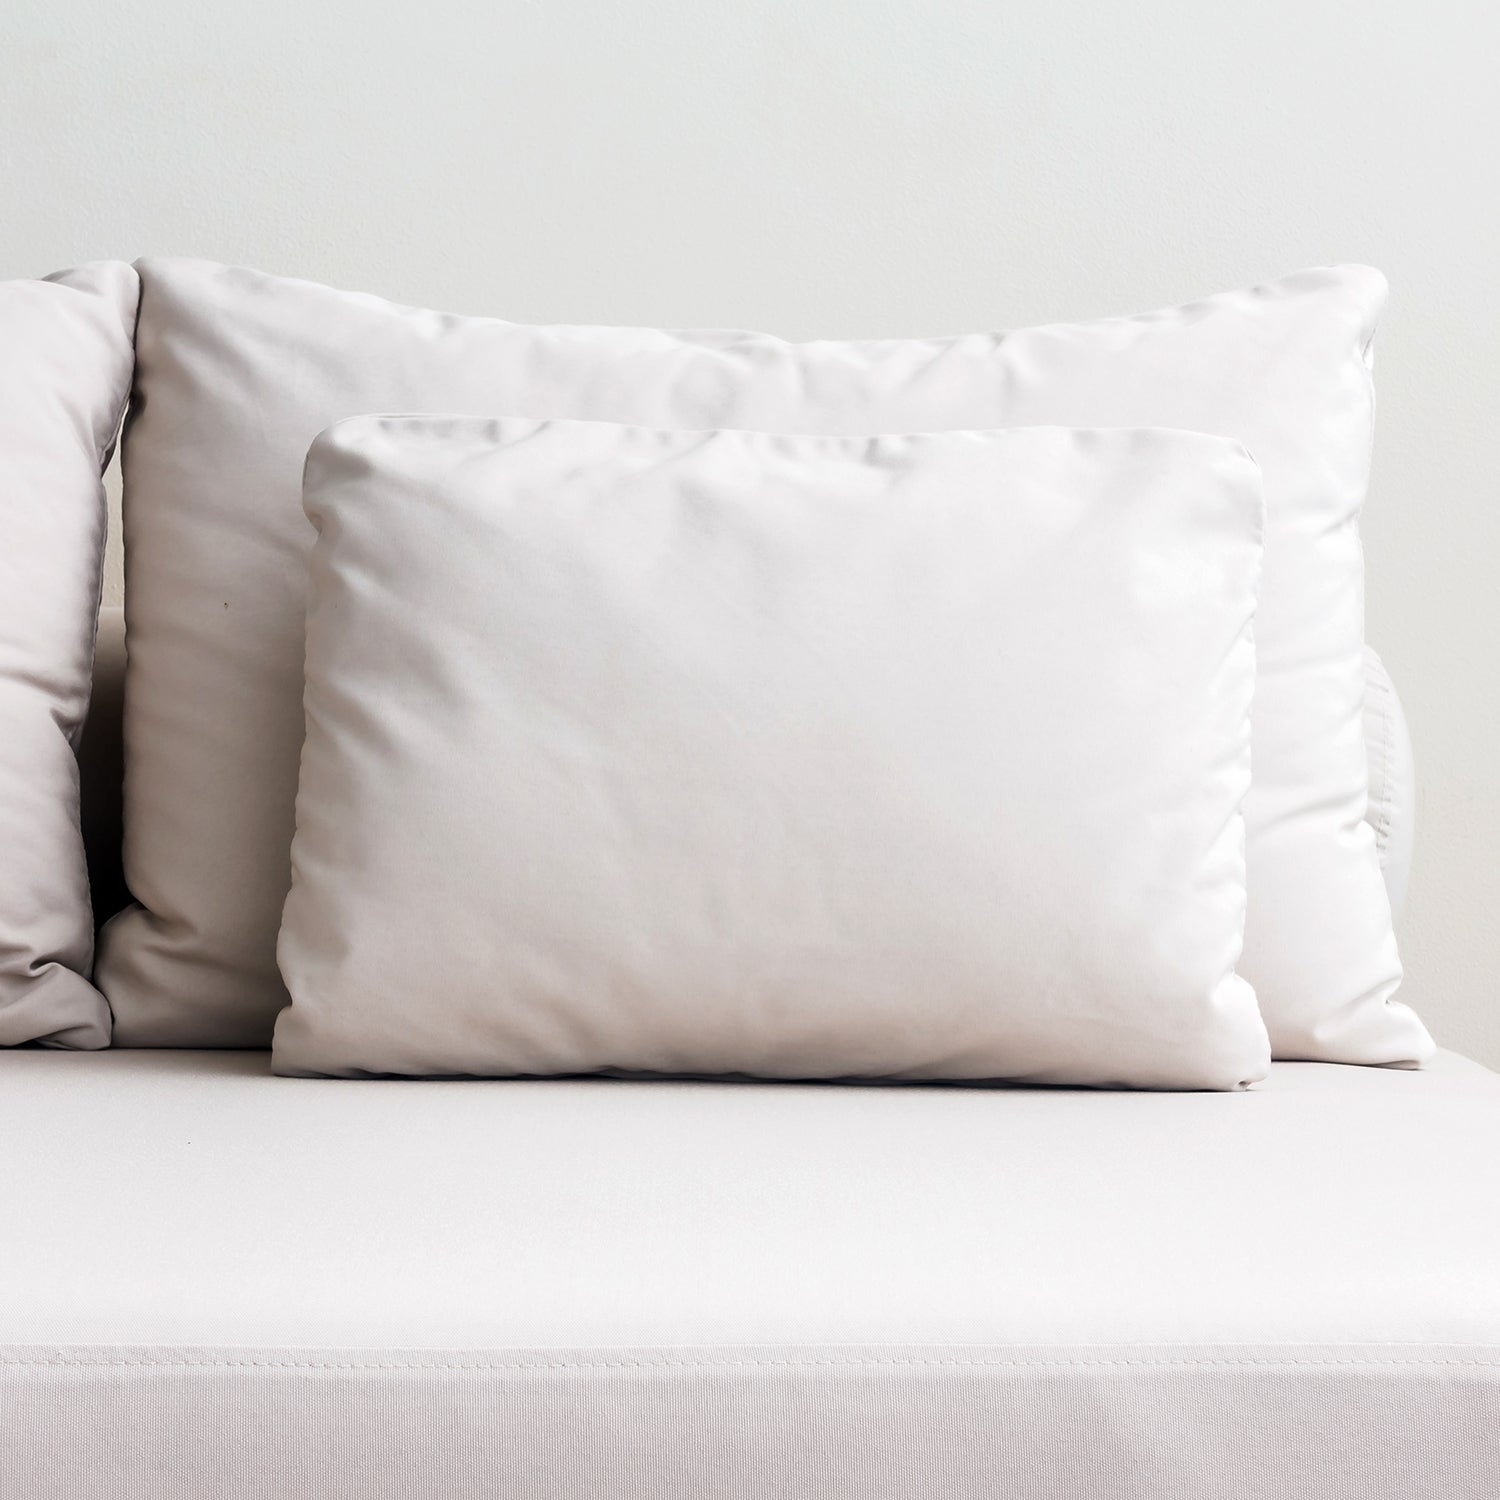 Could Your Pillow Be Affecting Your Skin and Hair?